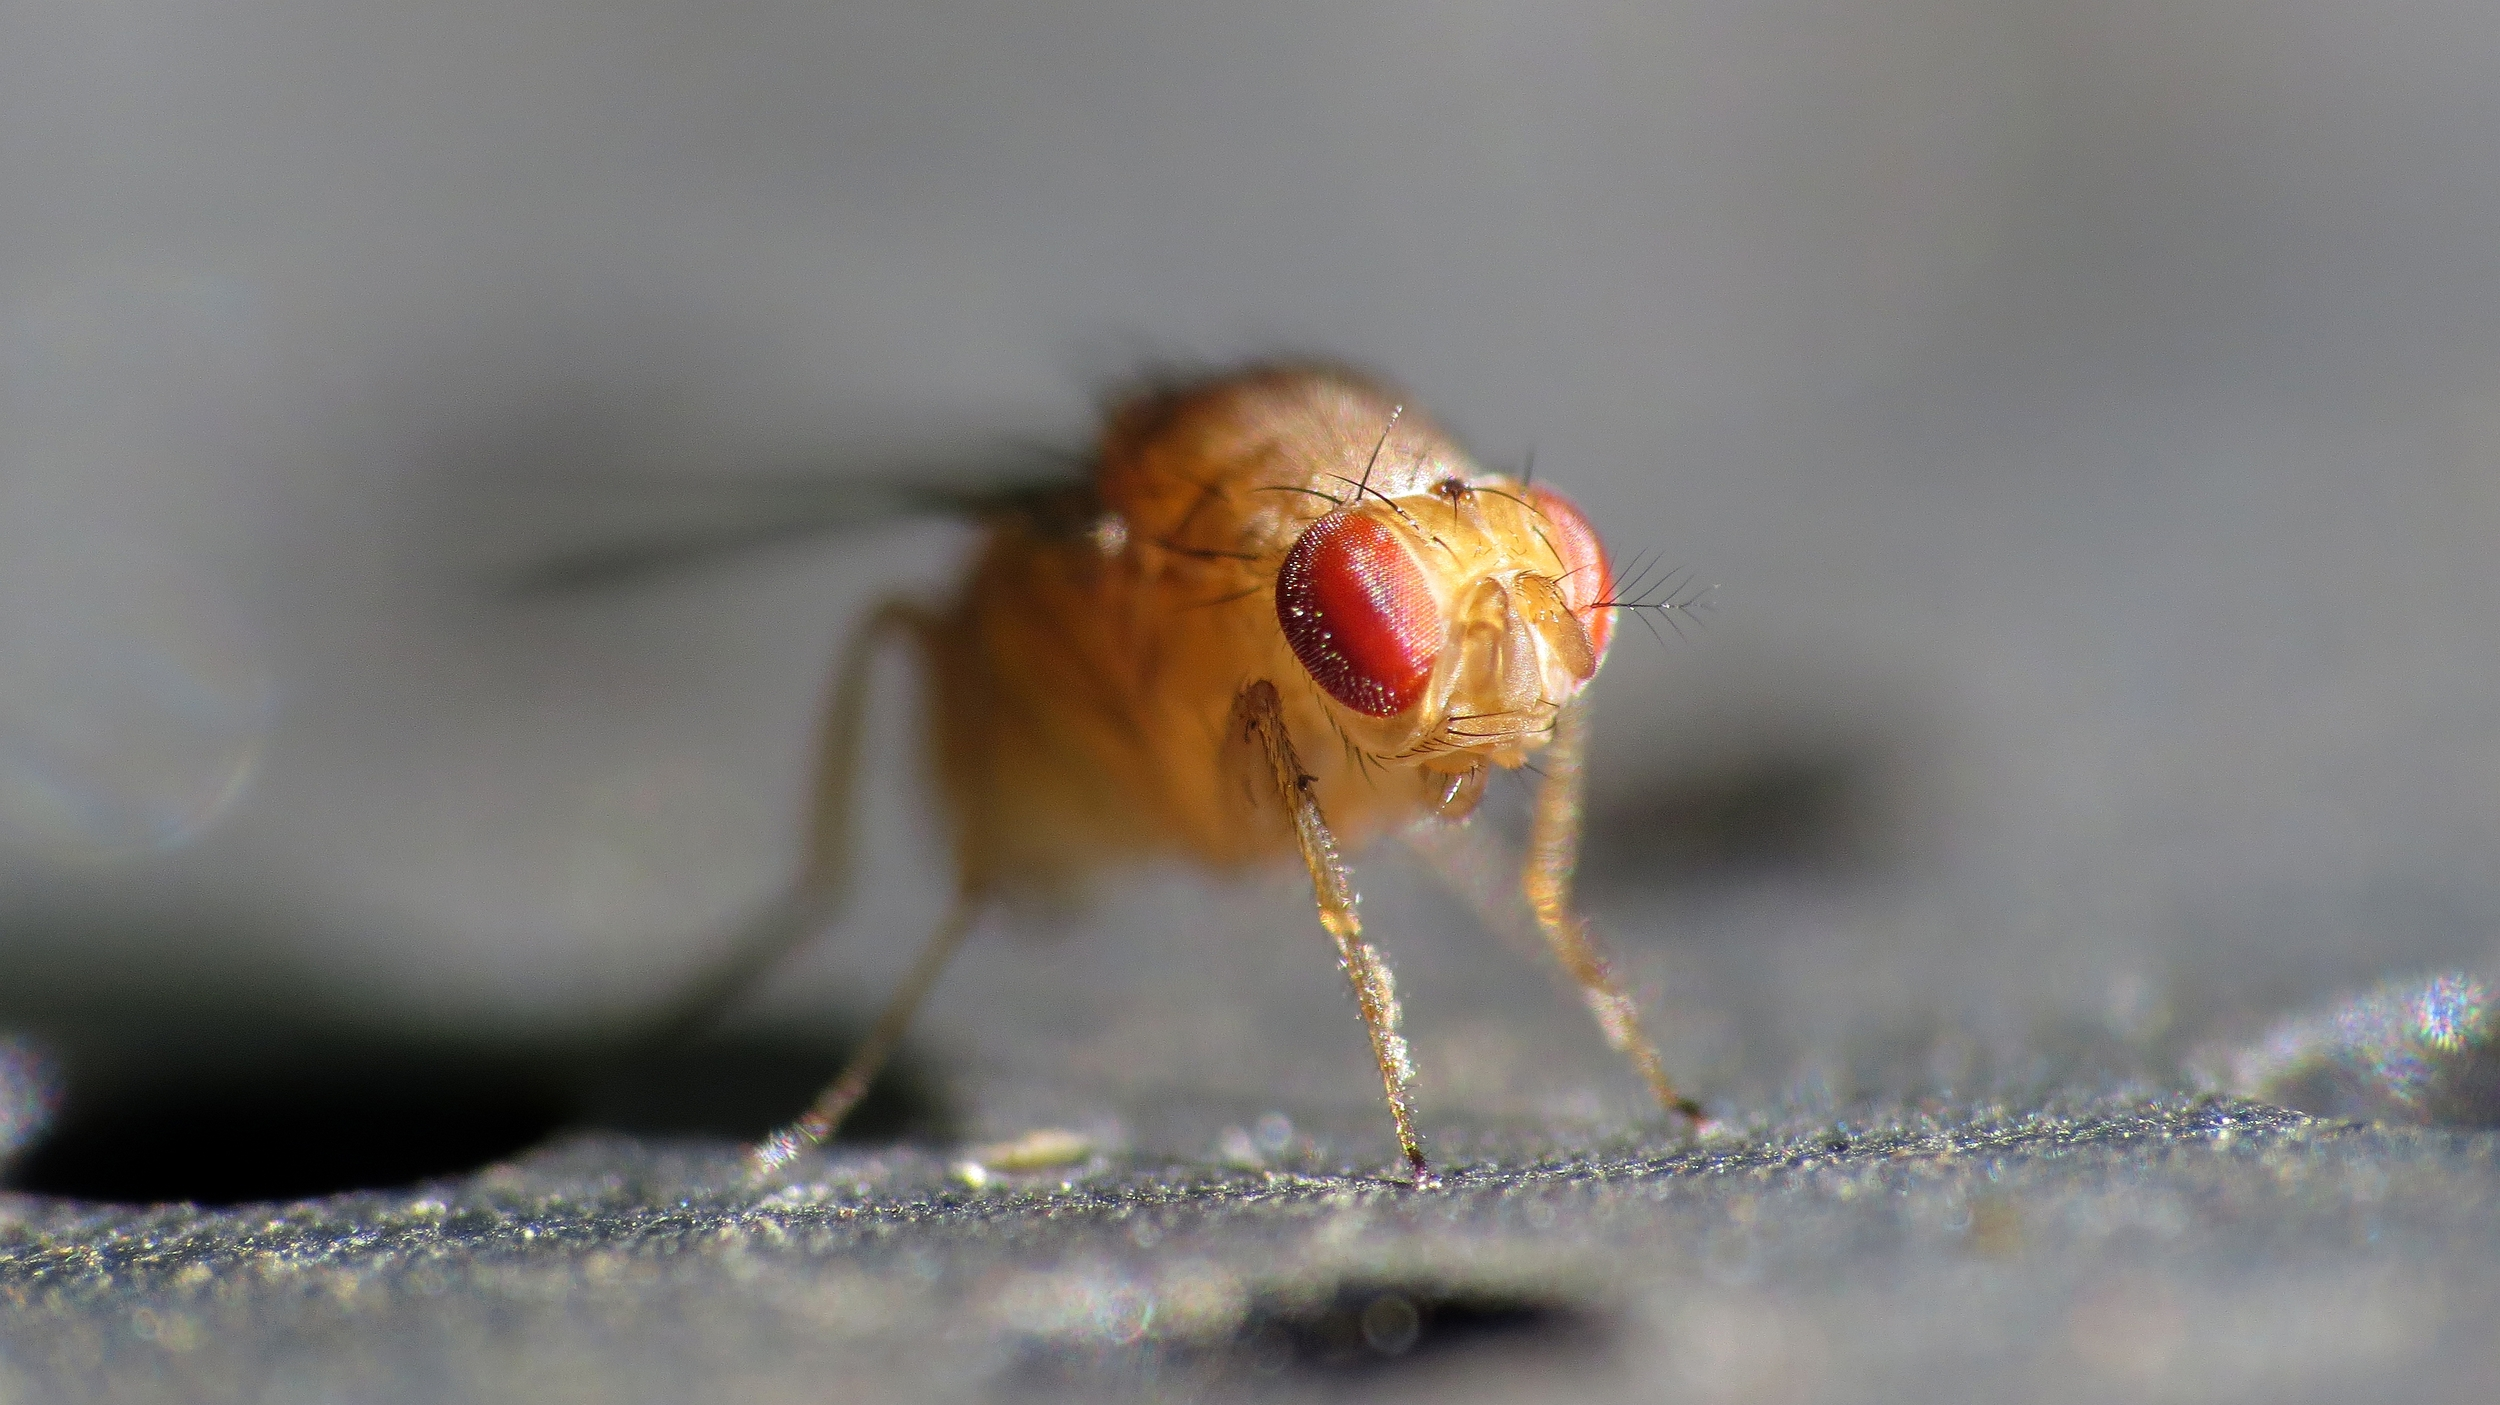 The misexpression of a gene can trigger male-male courtship in fruitflies.   John Tann/Flickr  (CC BY 2.0)